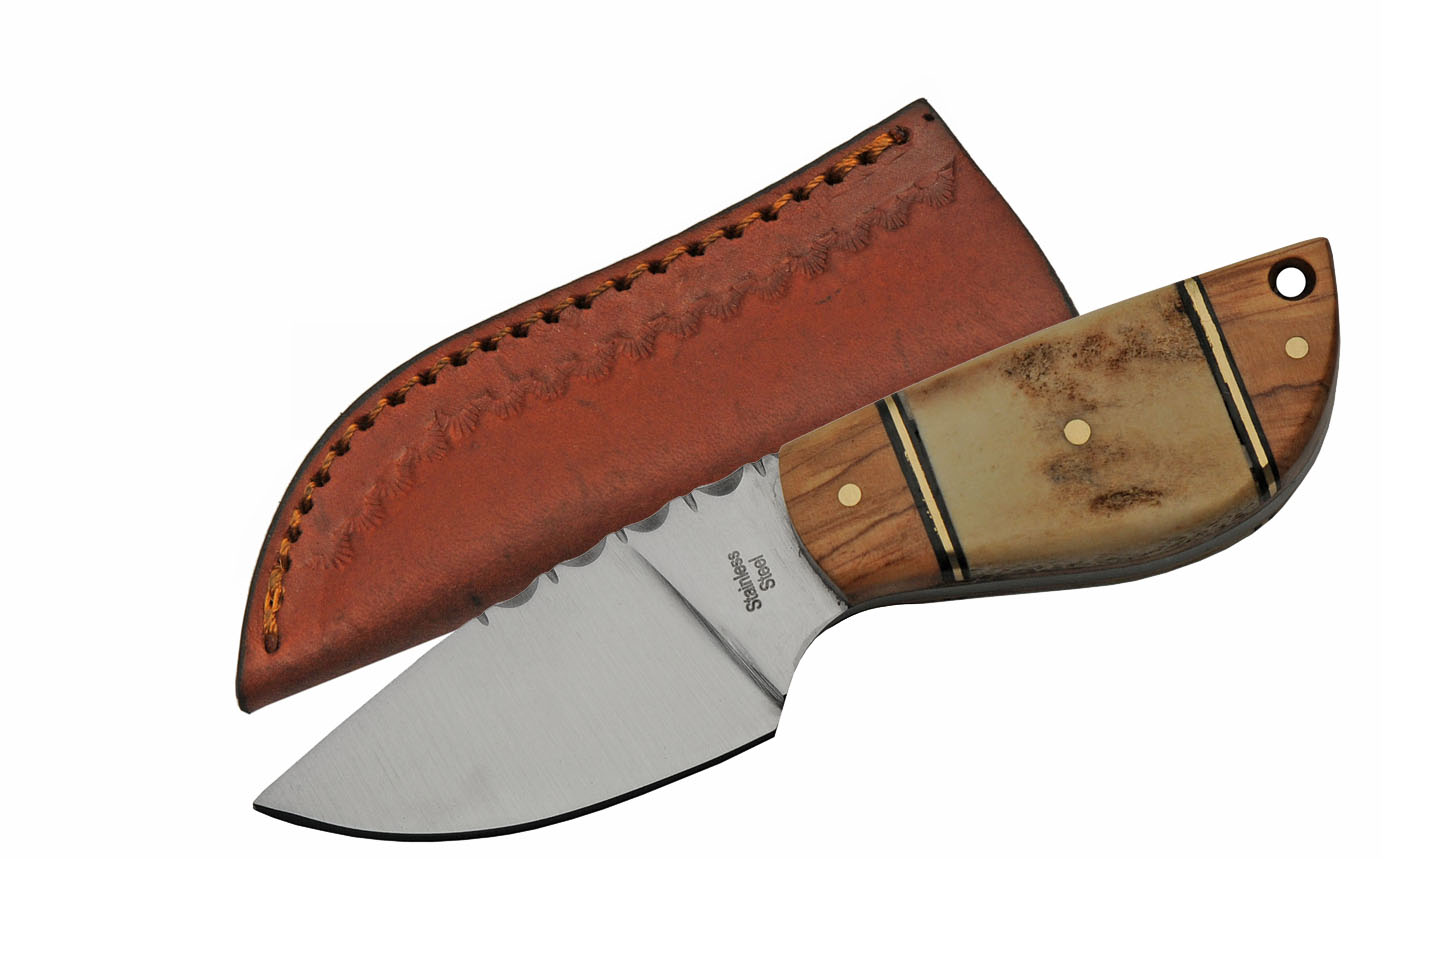 "Hunting Knife 5"" Overall Mini Wild Stag Wood Skinner Full Tang + Leather Sheath"